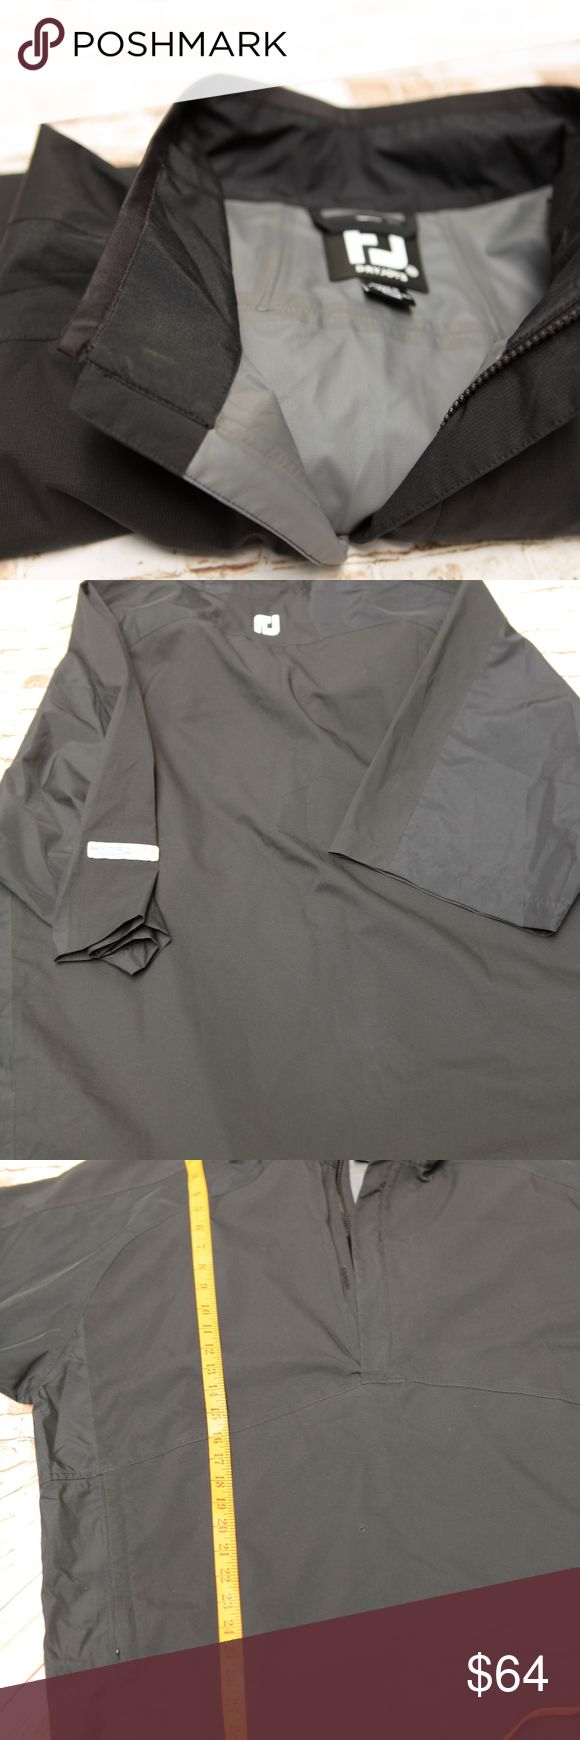 """Footjoy FJ HydroLite Black Dryjoys ½ Zipped Short Footjoy FJ HydroLite Dryjoys ½ Zipped Short Sleeve Golf Jacket – 2XL  Men's Regular 2XL  Color: Black  Made in China  Measurements:  Shoulders: 26"""" [seam to seam]  Chest: 58"""" [armpit seam to armpit seam – 29""""]  Length: 31"""" [top of shoulders to bottom hem]  Is Pre-owned in excellent condition. No stains, No hole, no rip. Clean and no odors.   Water Resistant  A durable, water repellant finish keeps you dry in a mist or light rain.  Raglan…"""